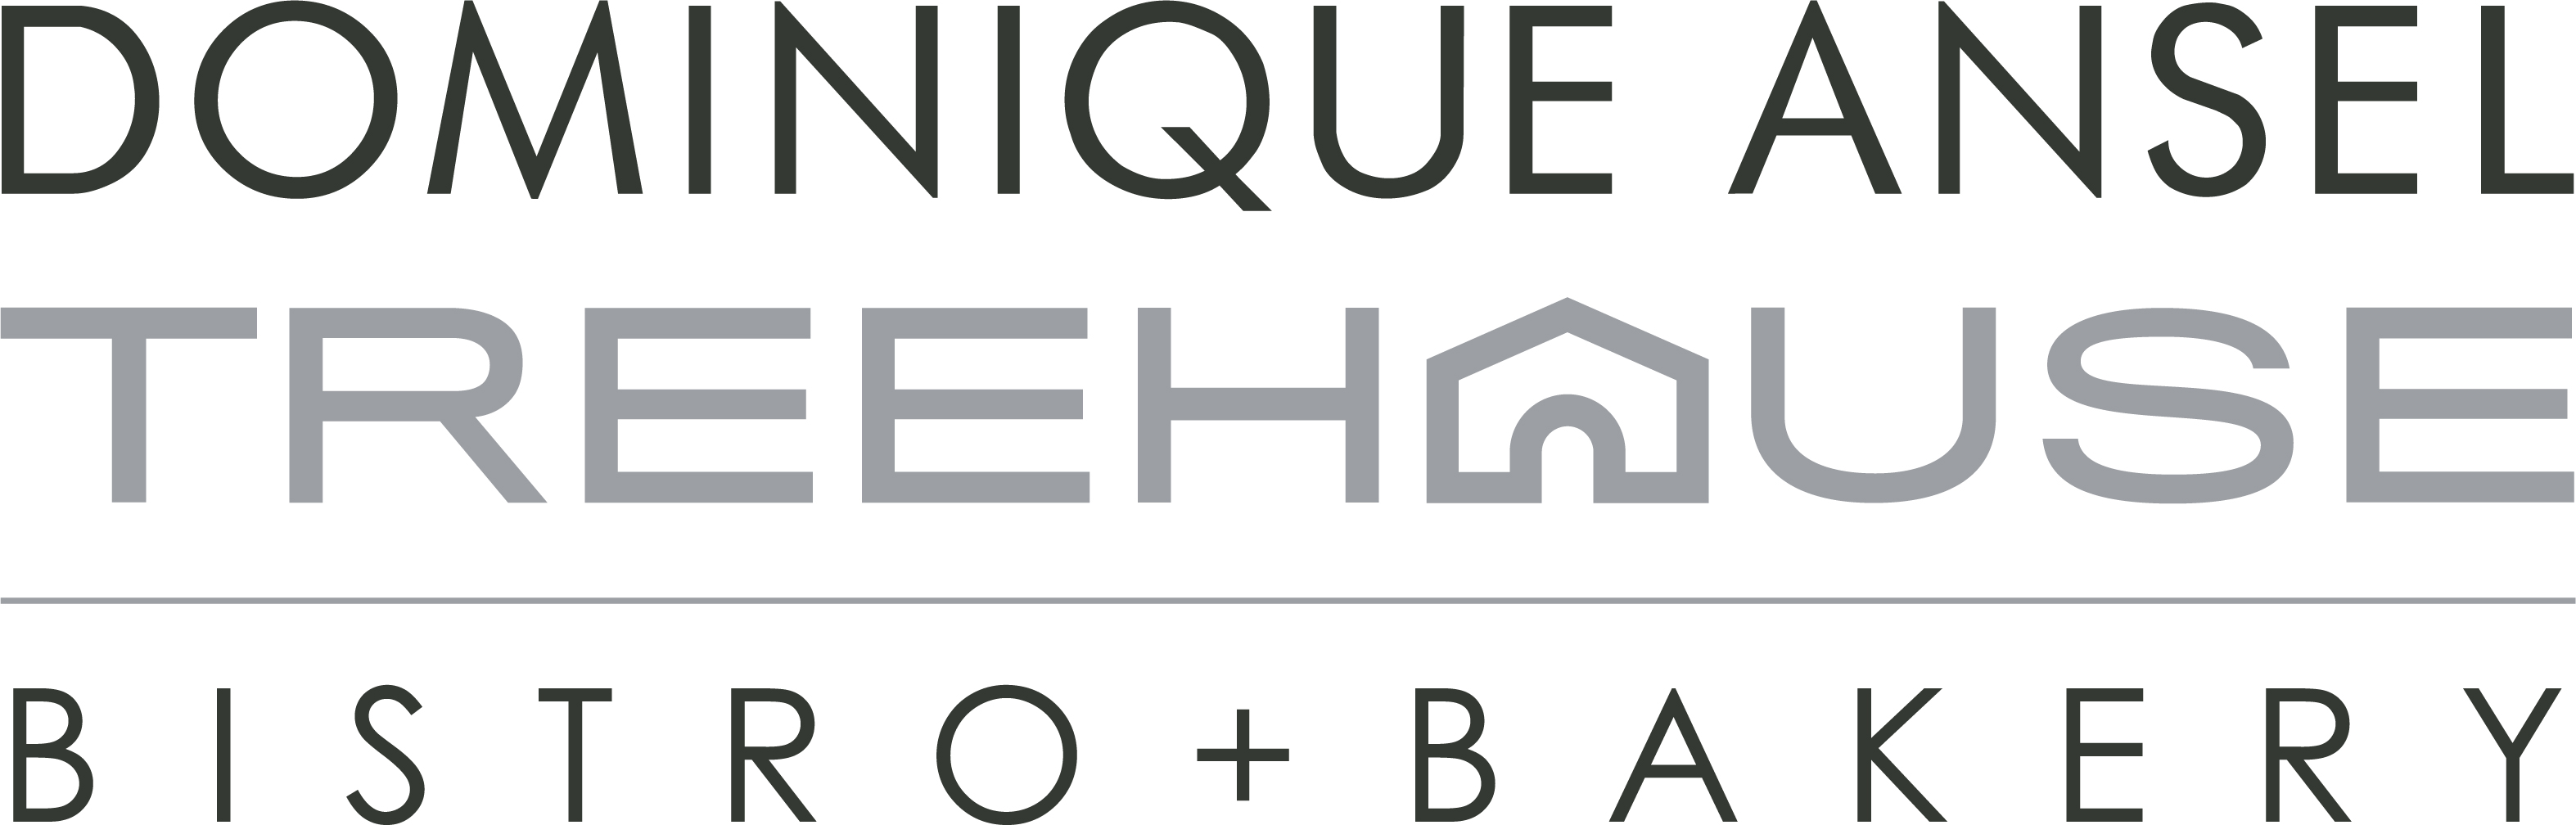 Dominique Ansel Treehouse logo